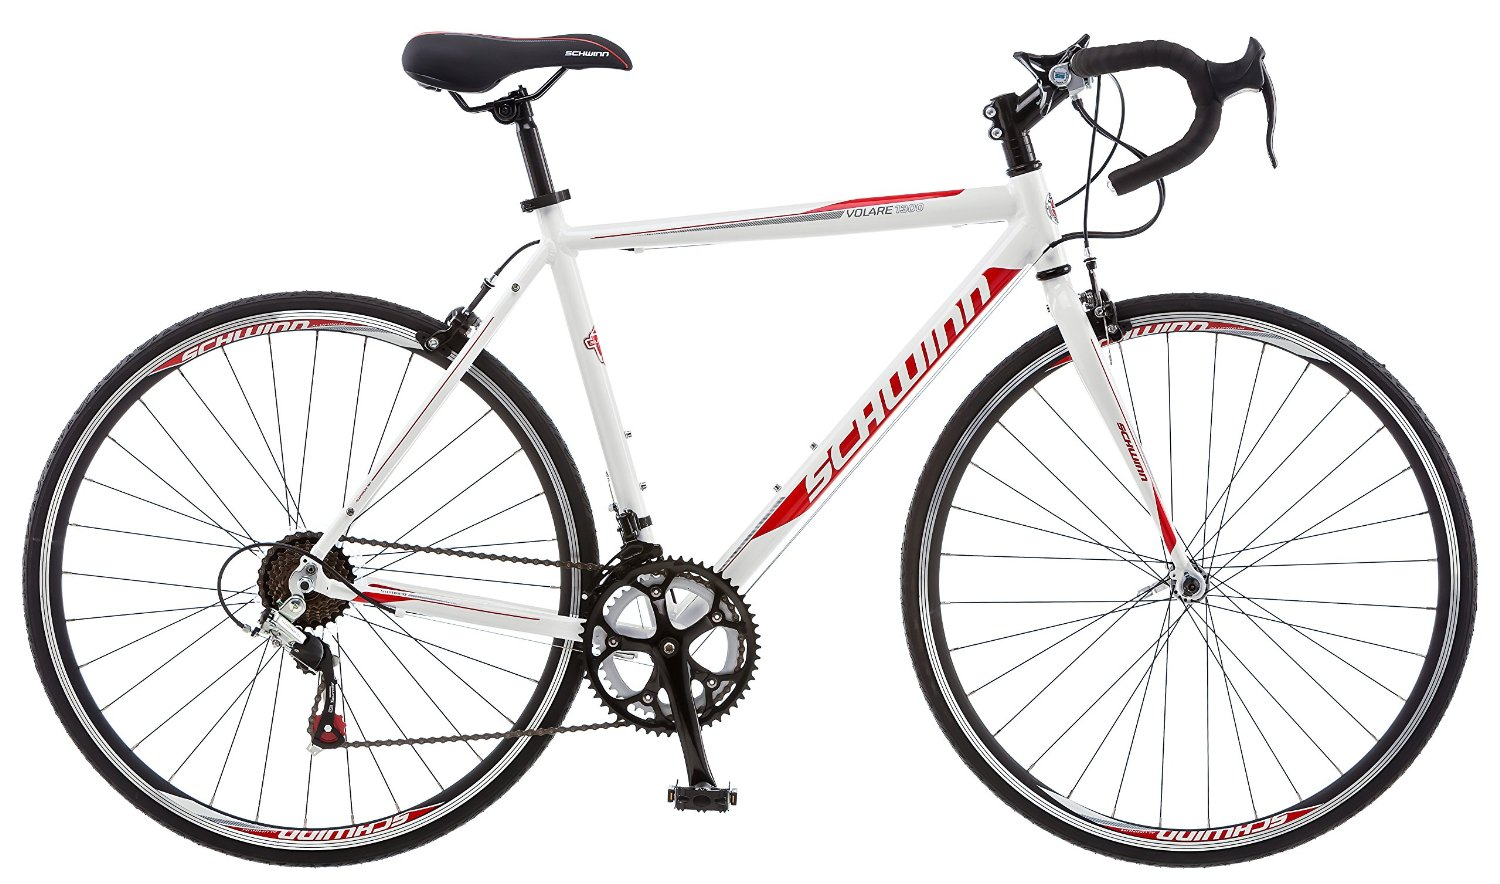 Schwinn Volare 1300 700c Men's Road Bike-The Best Beginner Bike